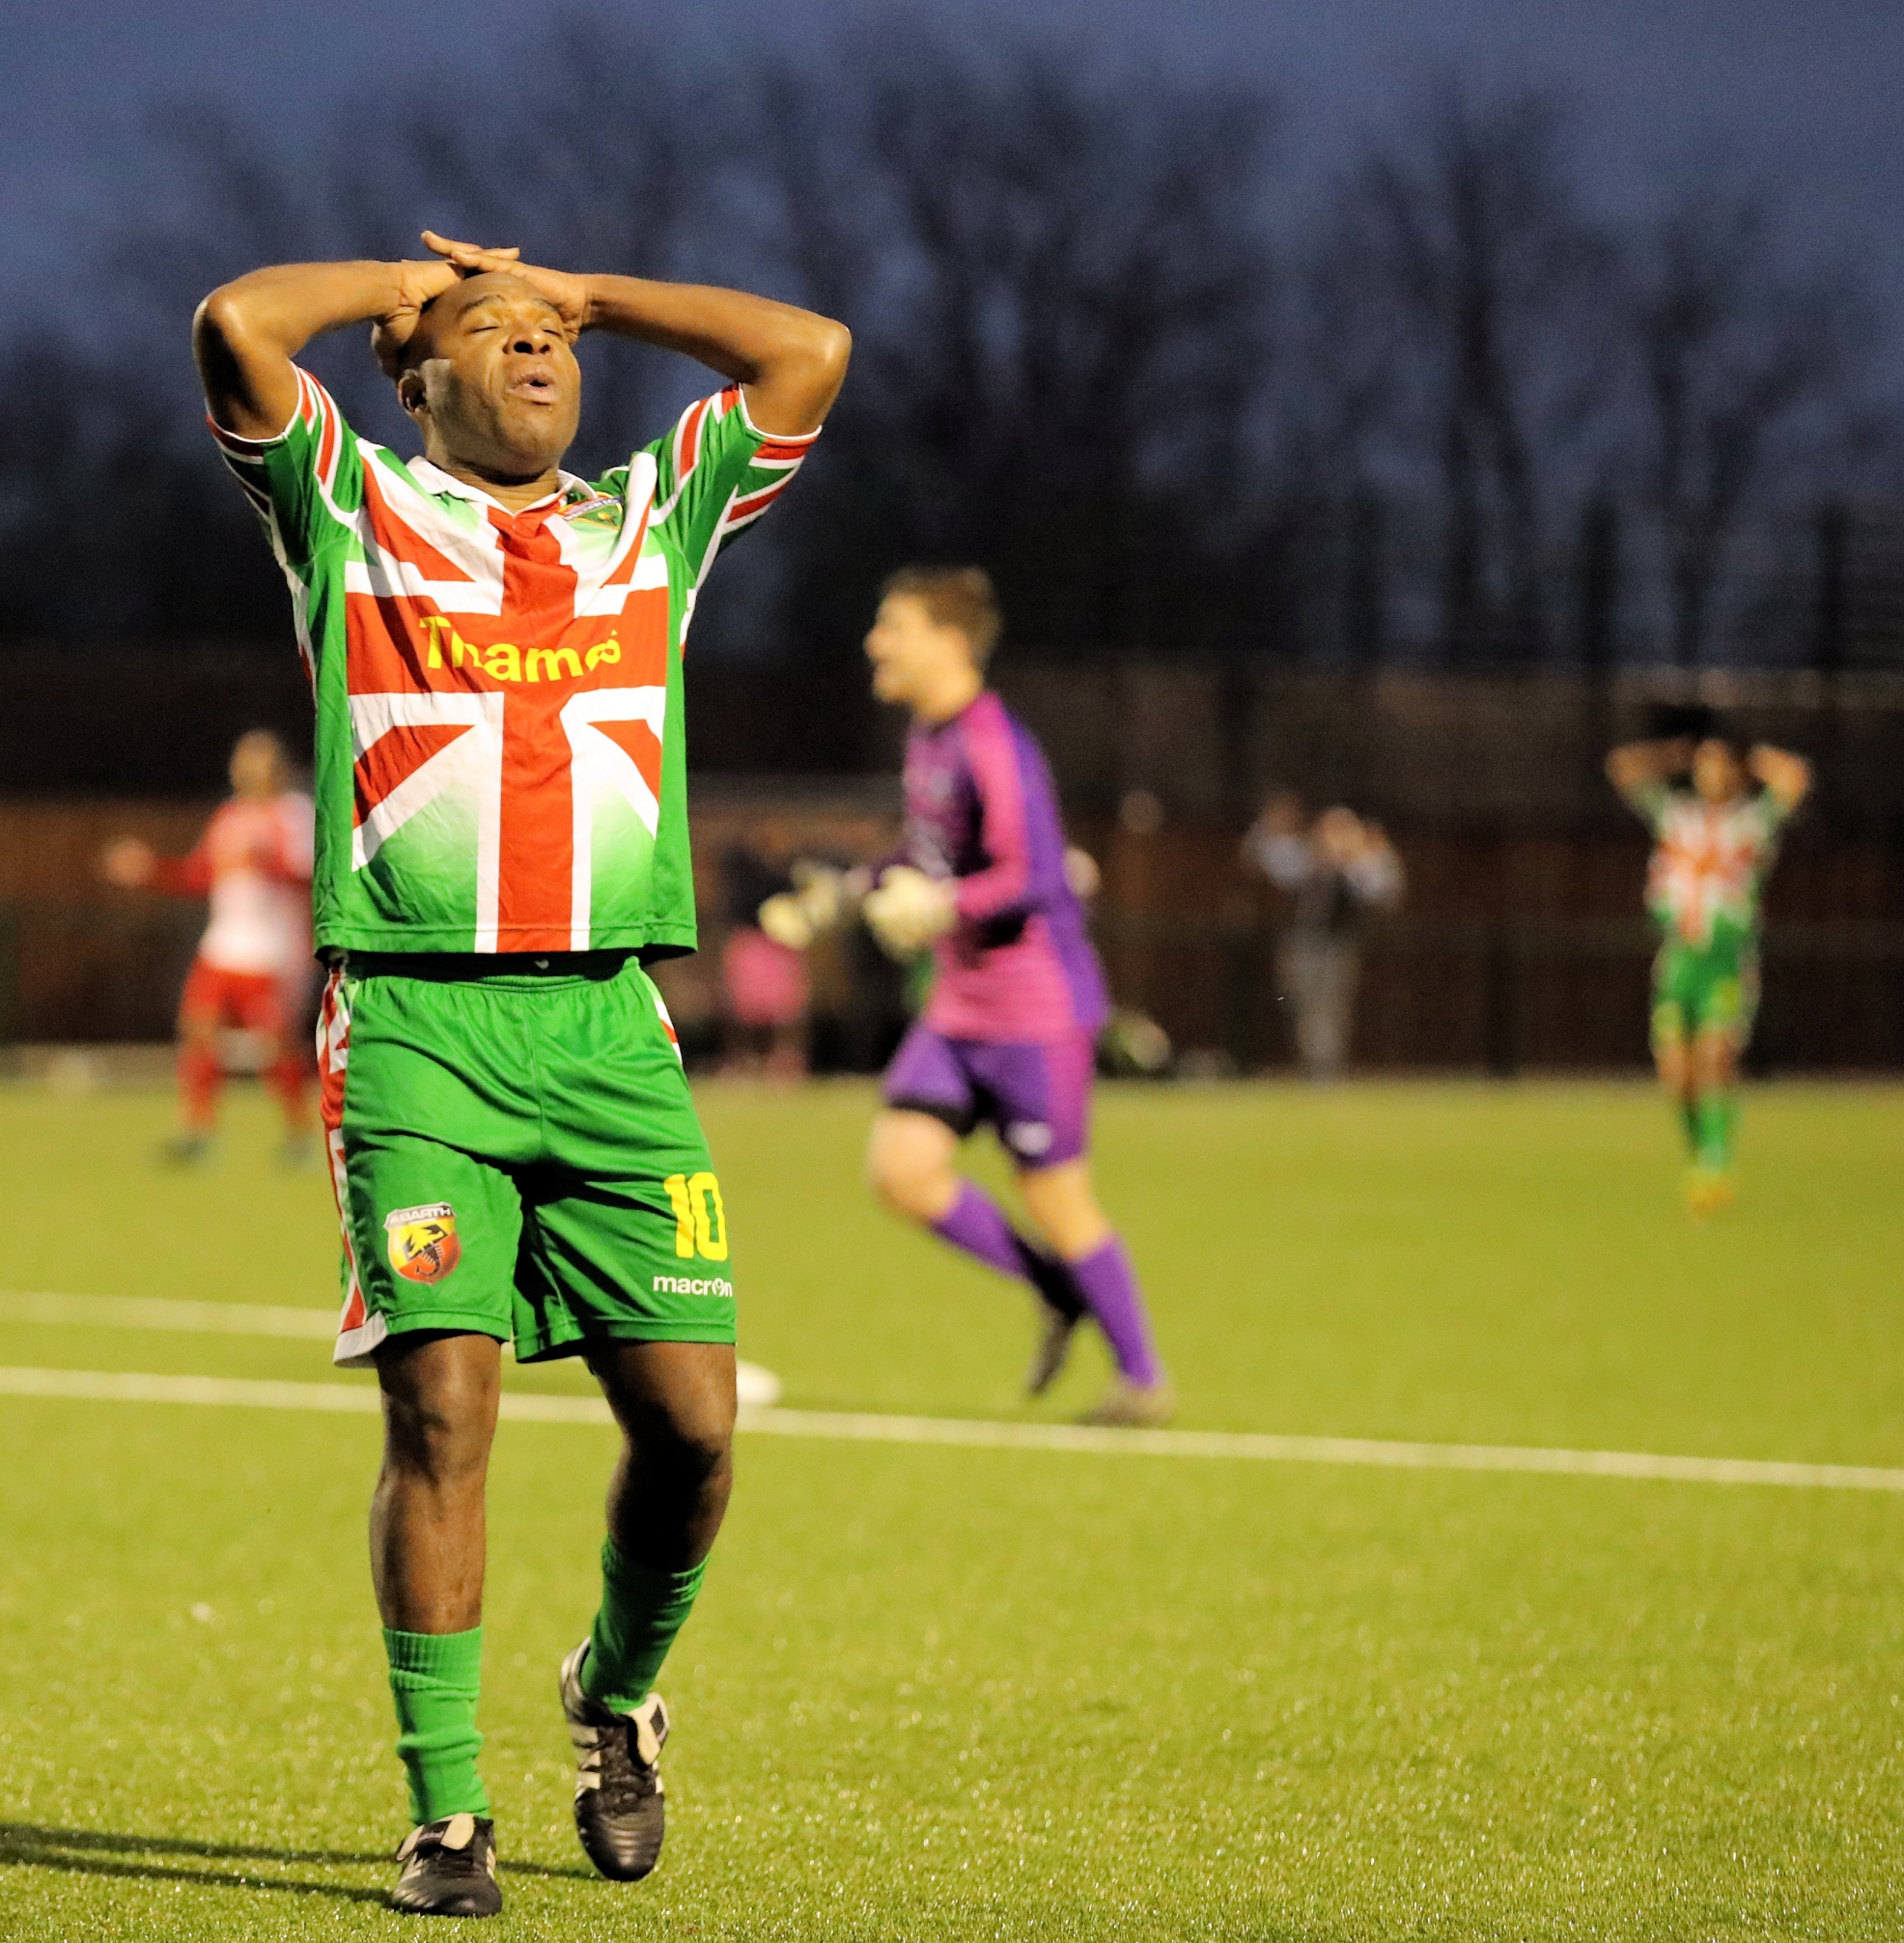 Former professional and now Windsor striker Barry Hayles will miss the FA Vase fifth round proper tie against Hamble Club this Saturday due to a broken bone in his hand.